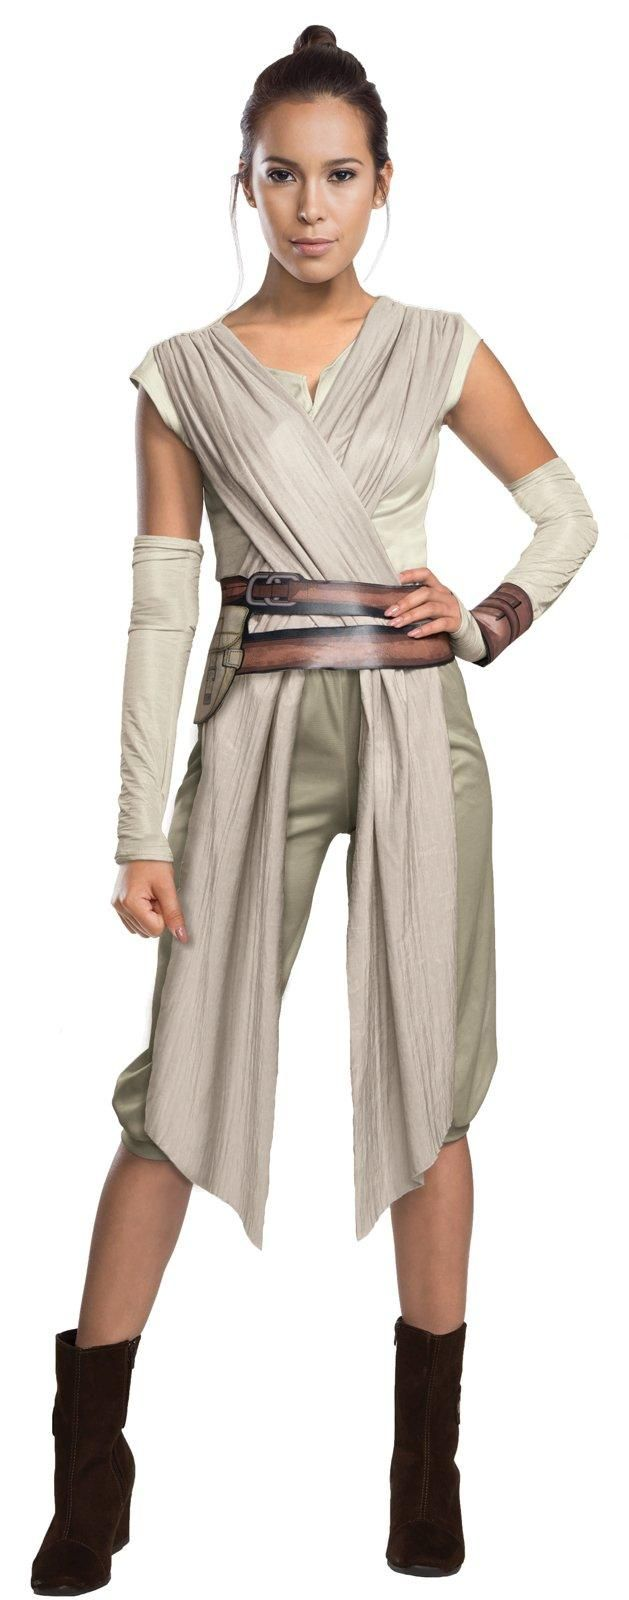 Star Wars Episode 7 - Womens Deluxe Rey Costume from Buycostumes.com